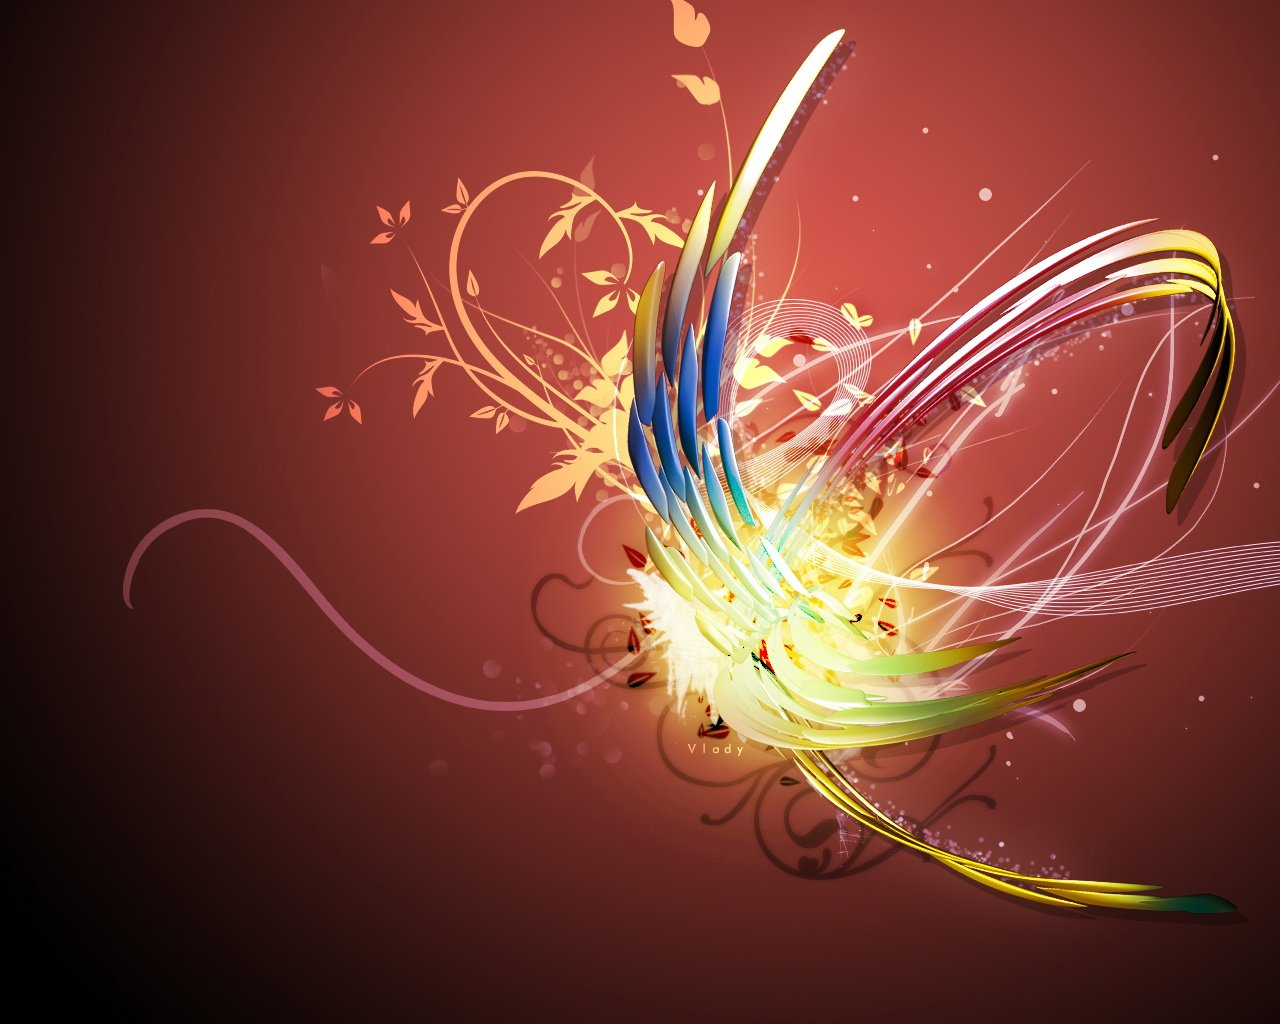 3d cool 3d abstract power backgrounds wallpapers jpg 1280x1024